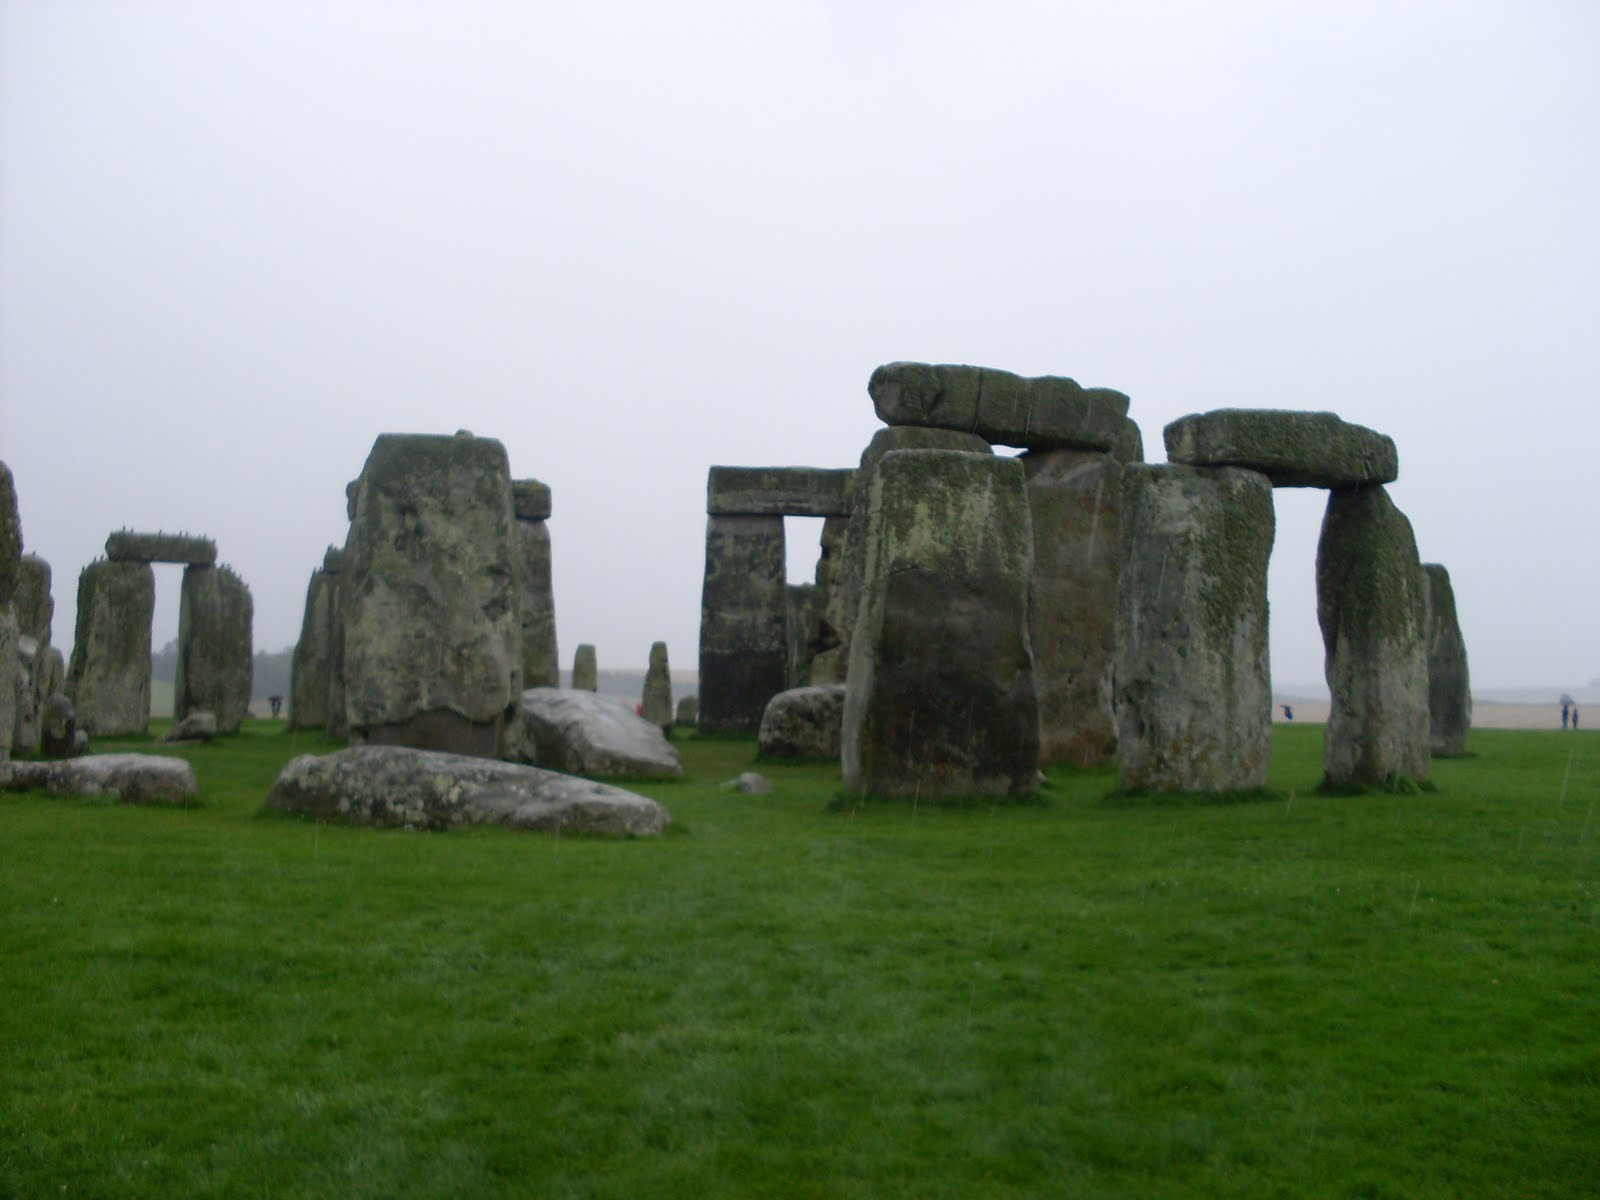 history of stonehenge Stonehenge construction periods, phases, and history stonehenge is definitely one of england's greatest icons its original purpose is still somewhat unclear, but some have speculated that it was a temple made for worship of ancient earth deities.